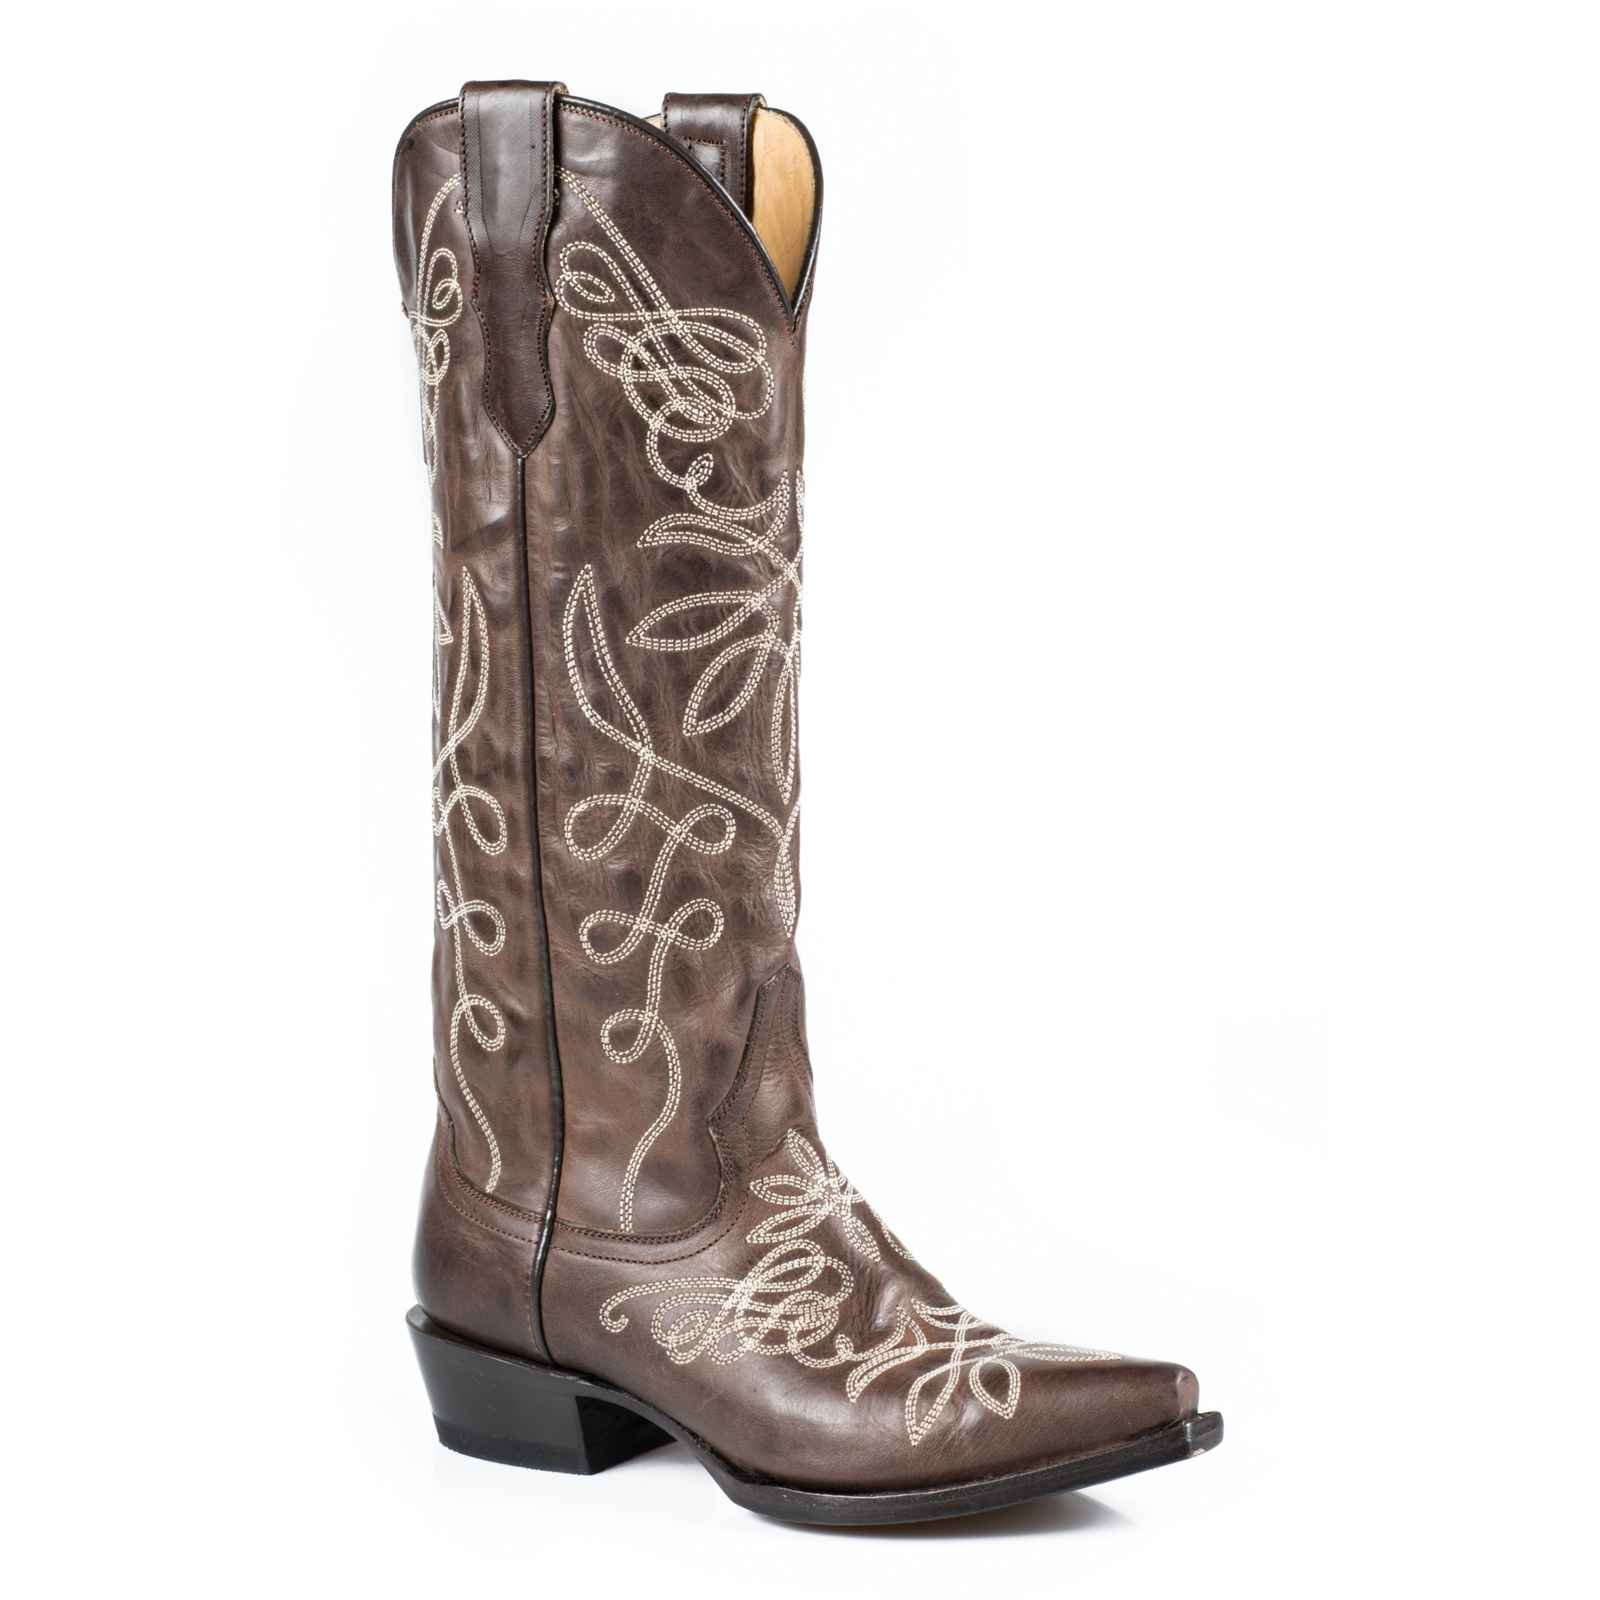 Stetson Women's Adeline Western Boot, Burnished Brown, 9.5 M US